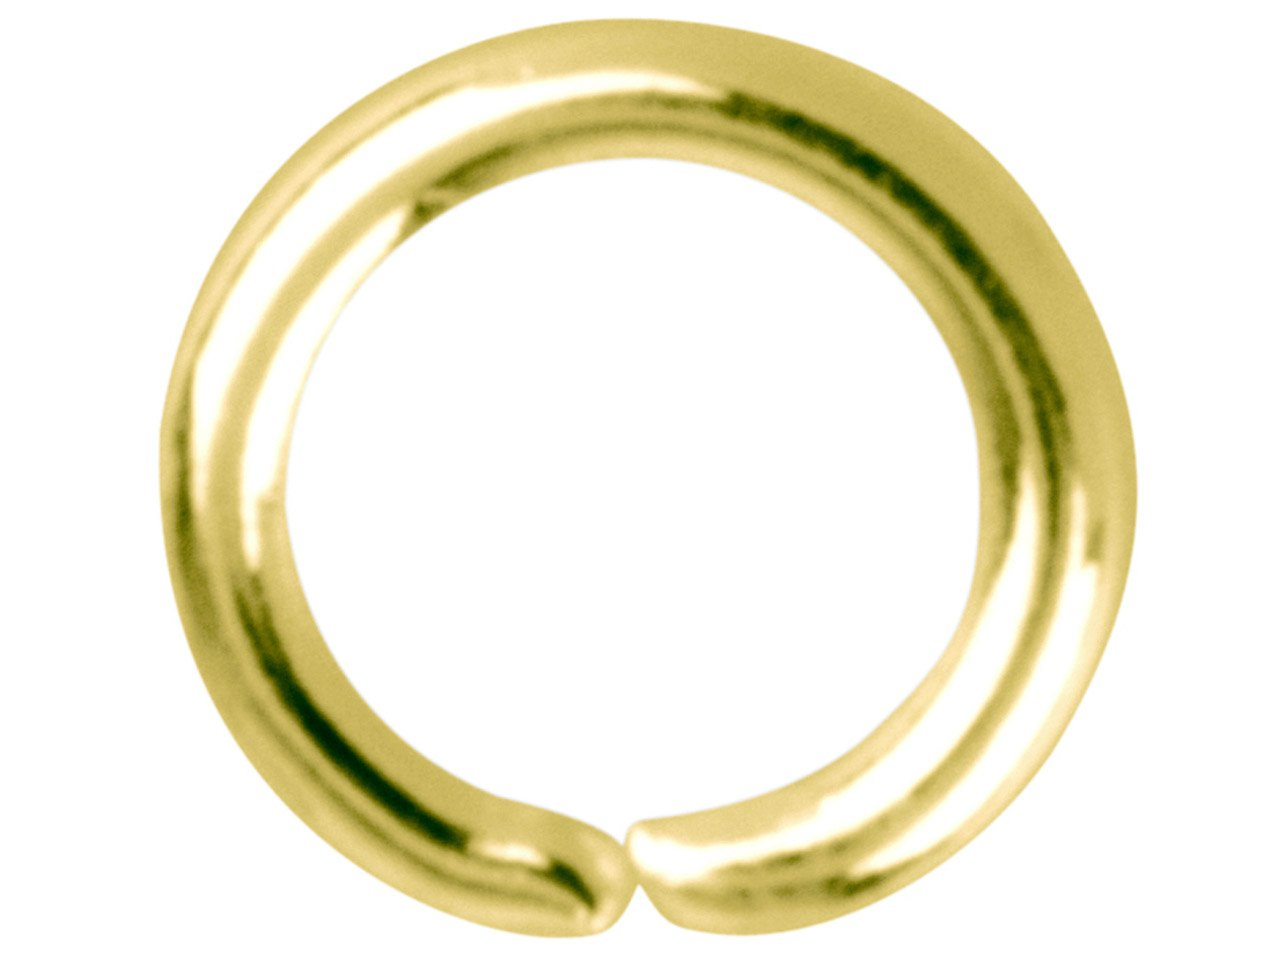 4mm X 3mm Cooksongold Gold Plated Jump Ring Oval 4mm Pack of 100